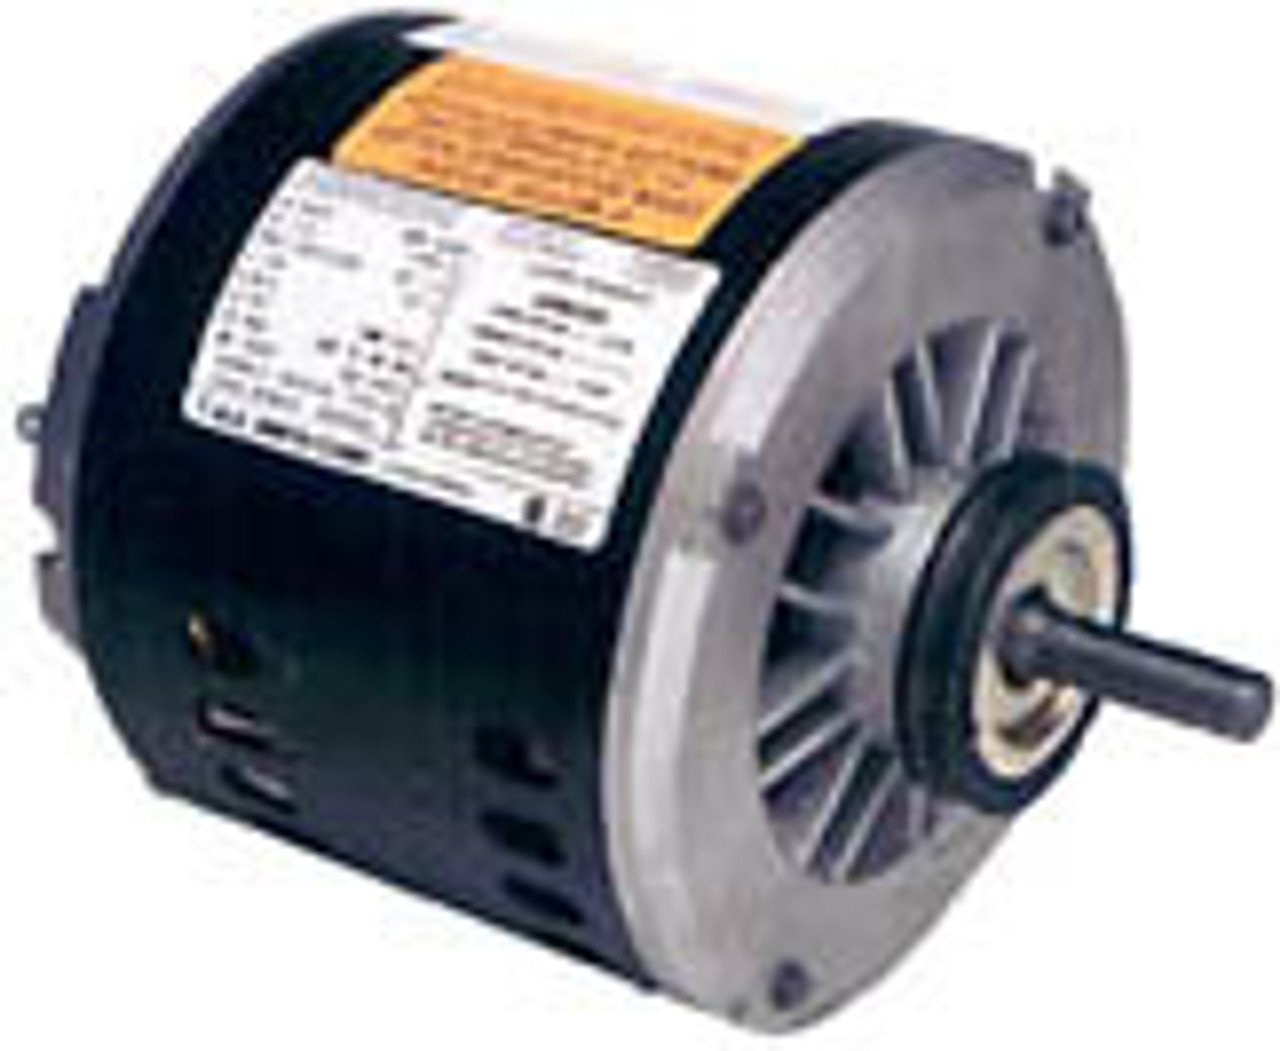 Cooler Motors - 120 Volt